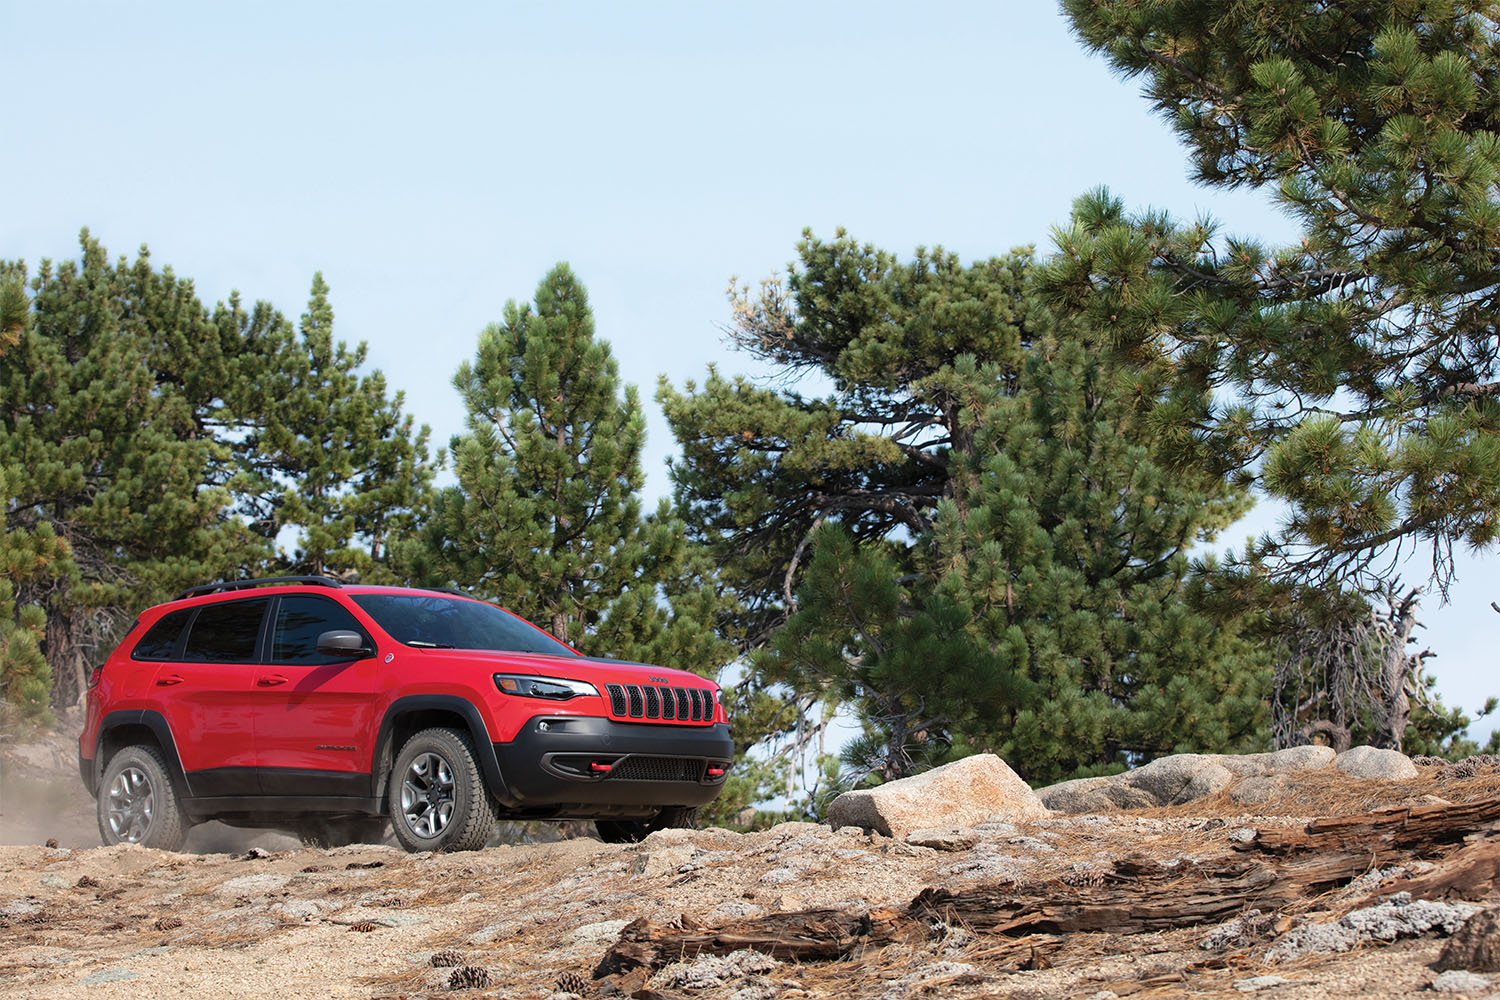 Jeep Dealership Grand Rapids Mi >> Jeep Financing Grand Rapids Mi Courtesy Cdjr